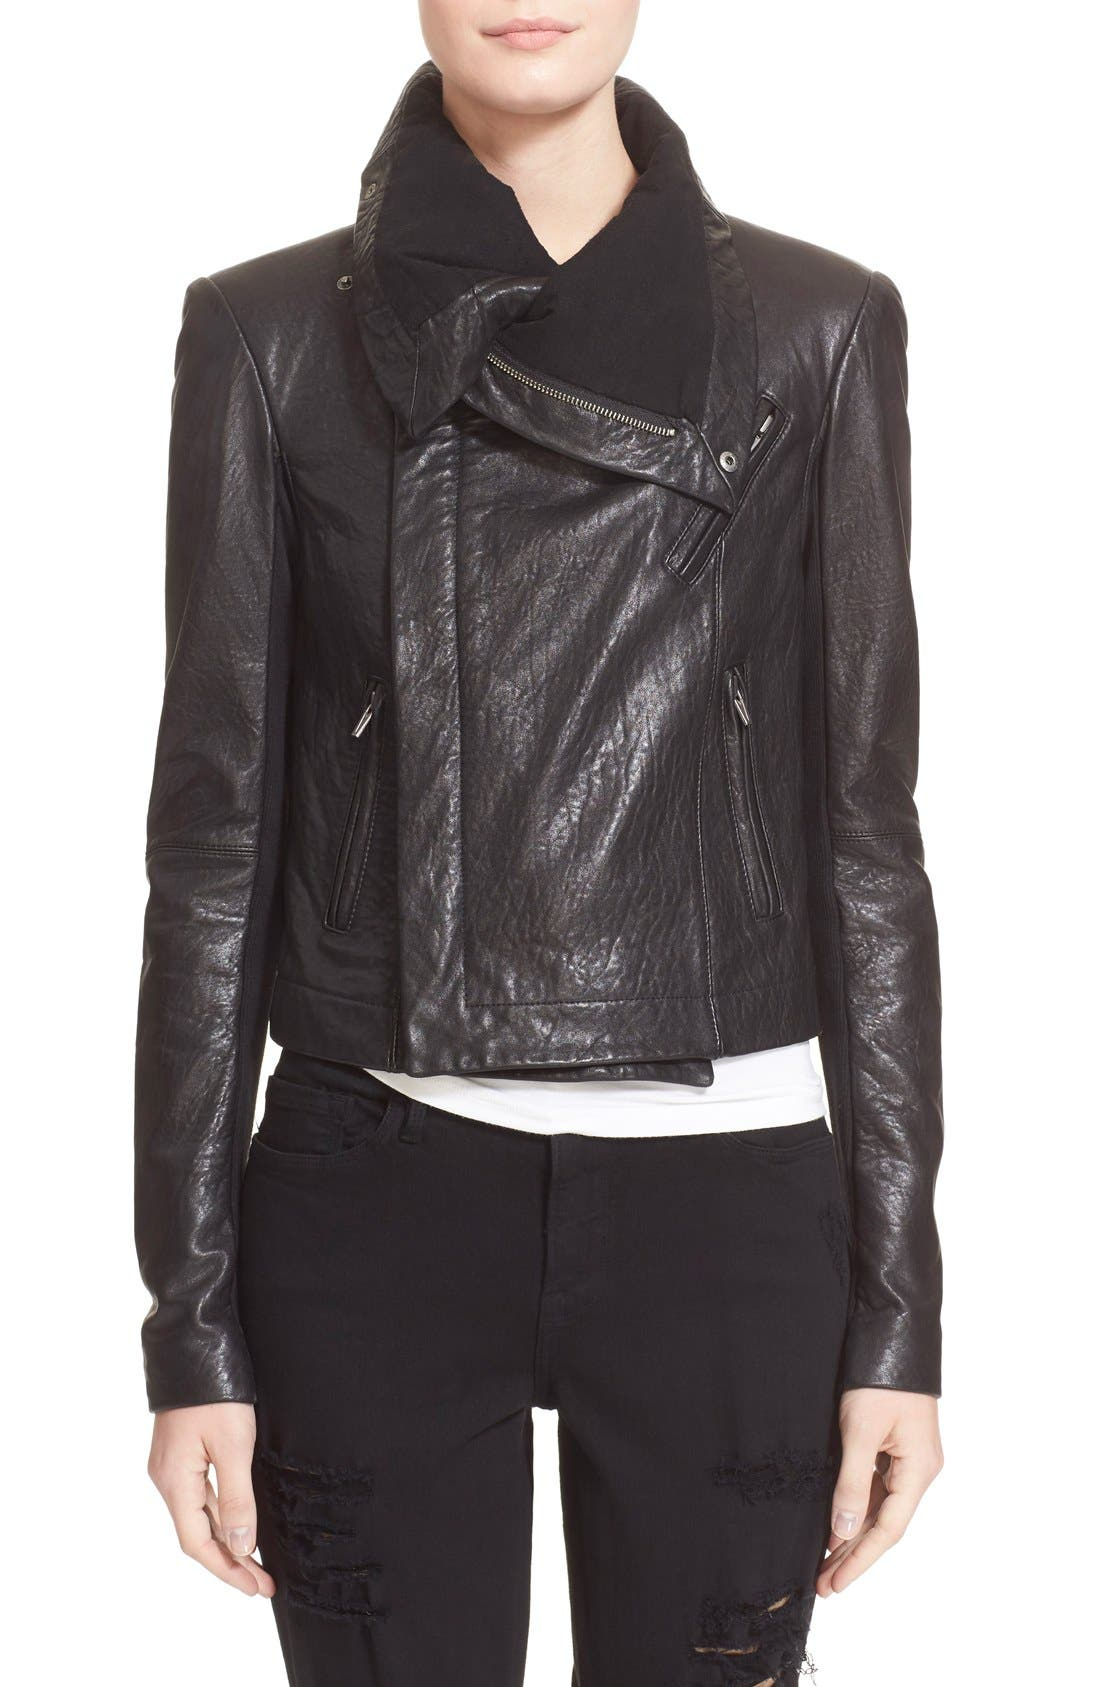 VEDA,                             'Max Classic' Leather Jacket,                             Main thumbnail 1, color,                             001